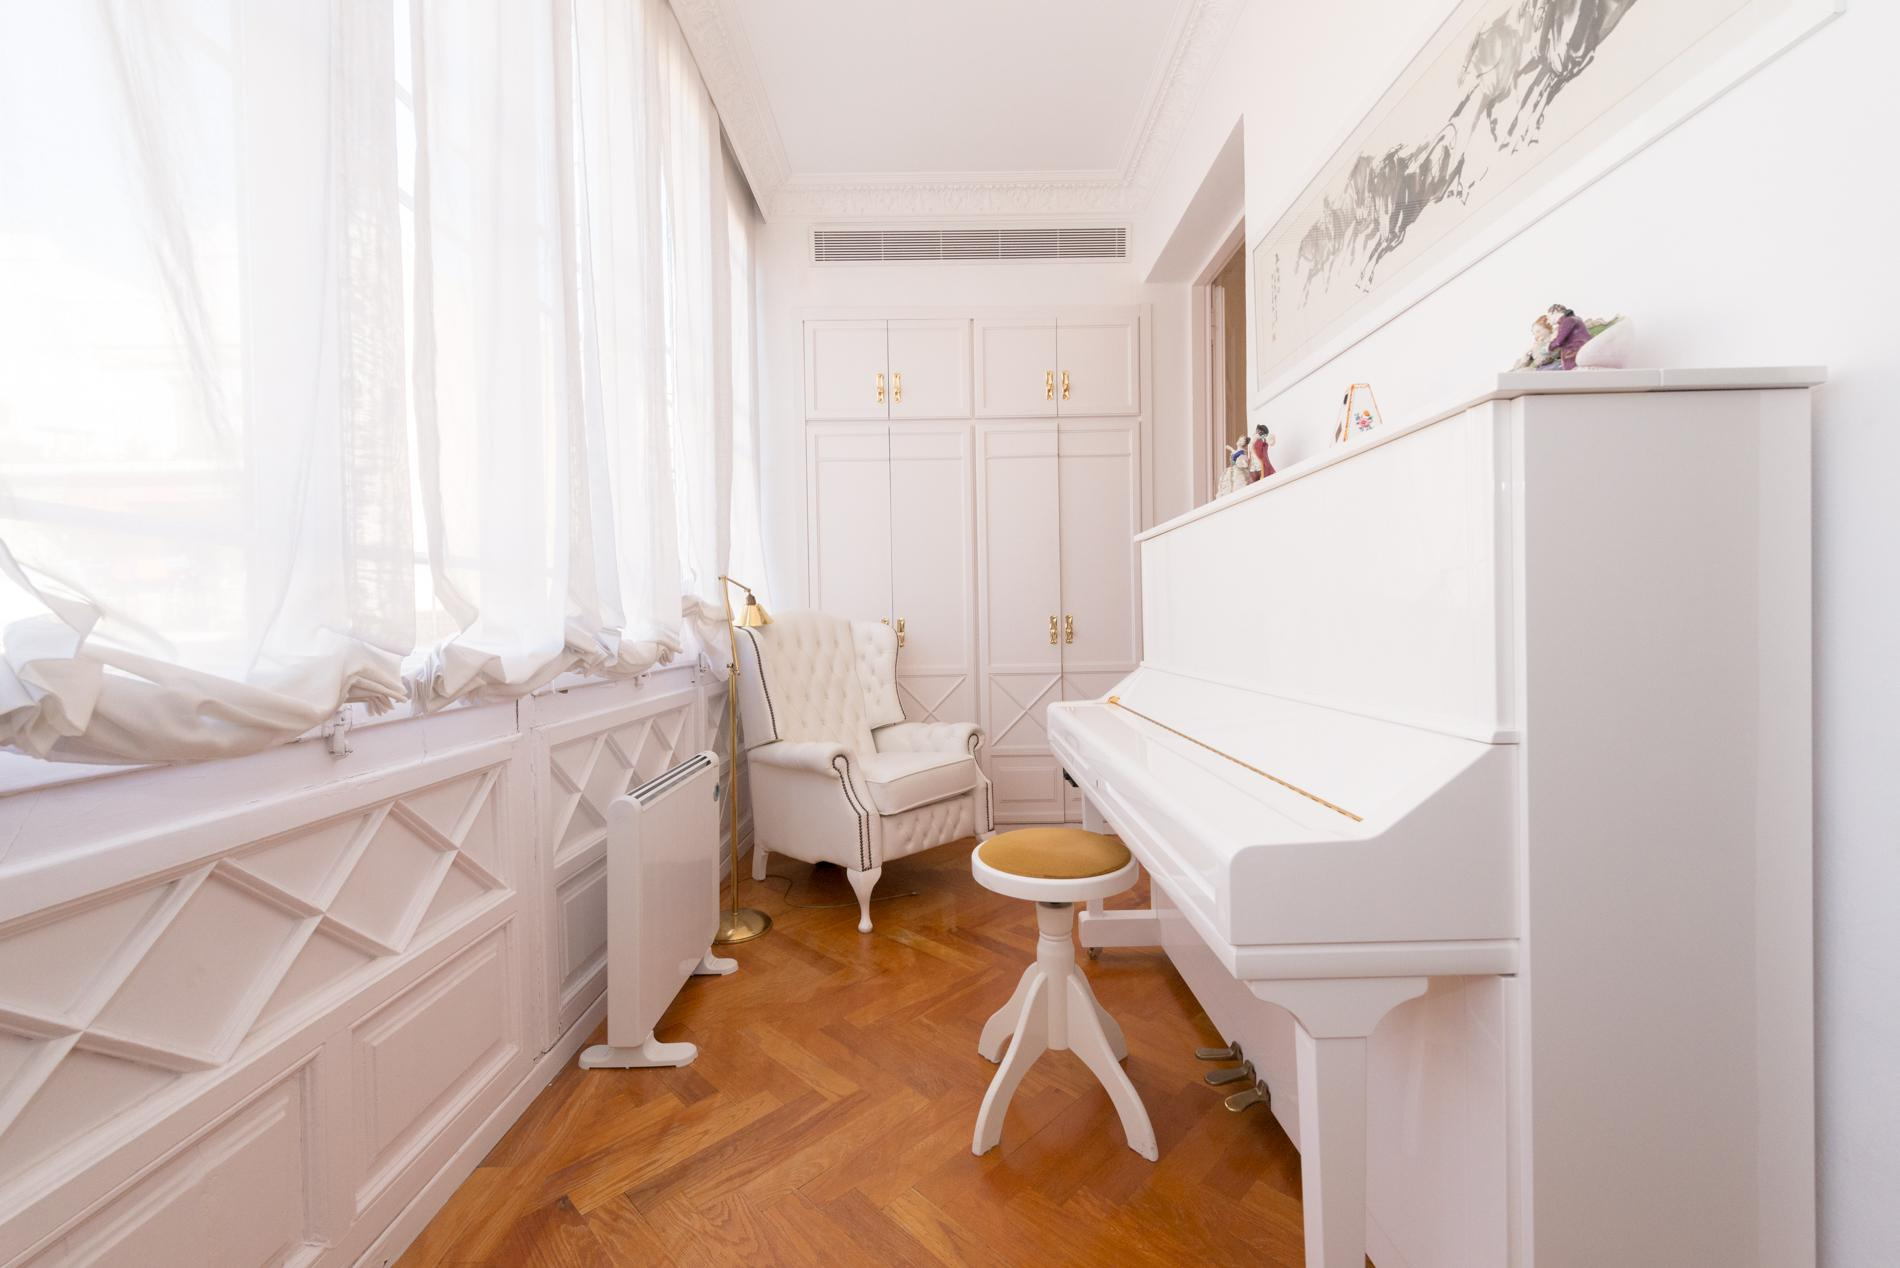 174066 Flat for sale in Eixample, Antiga Esquerre Eixample 12